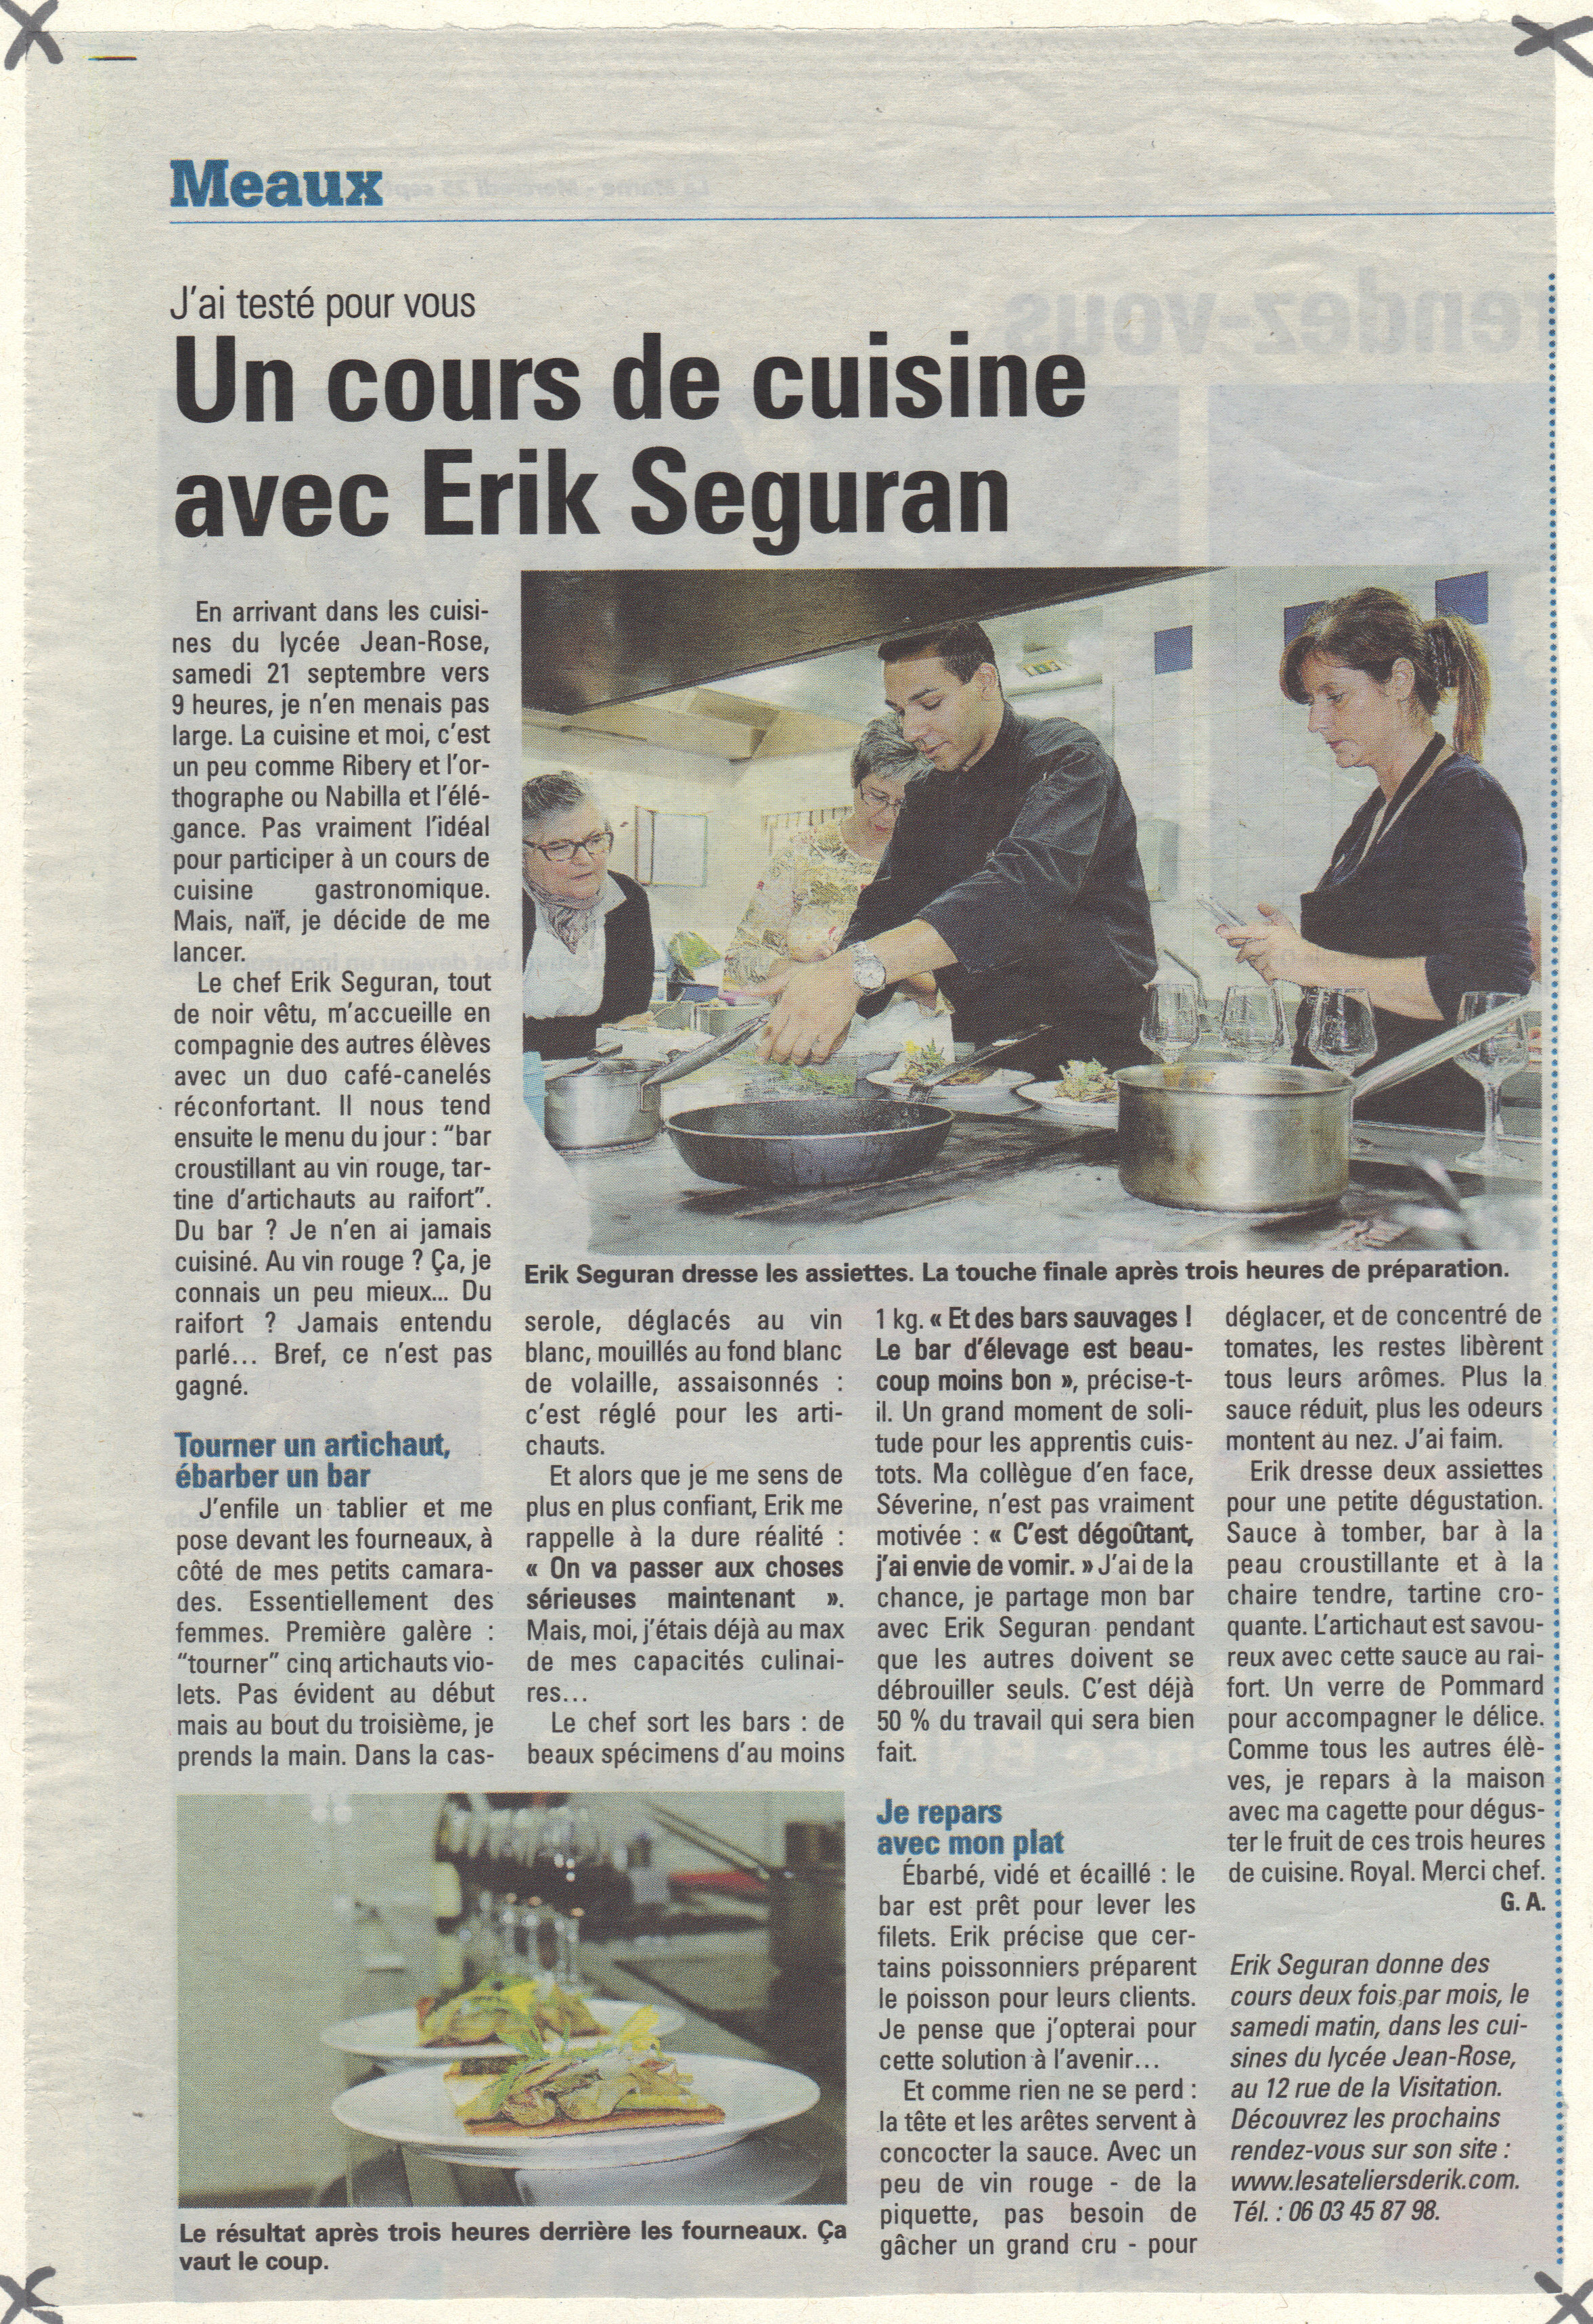 la marne 25 09 2013 article.JPG